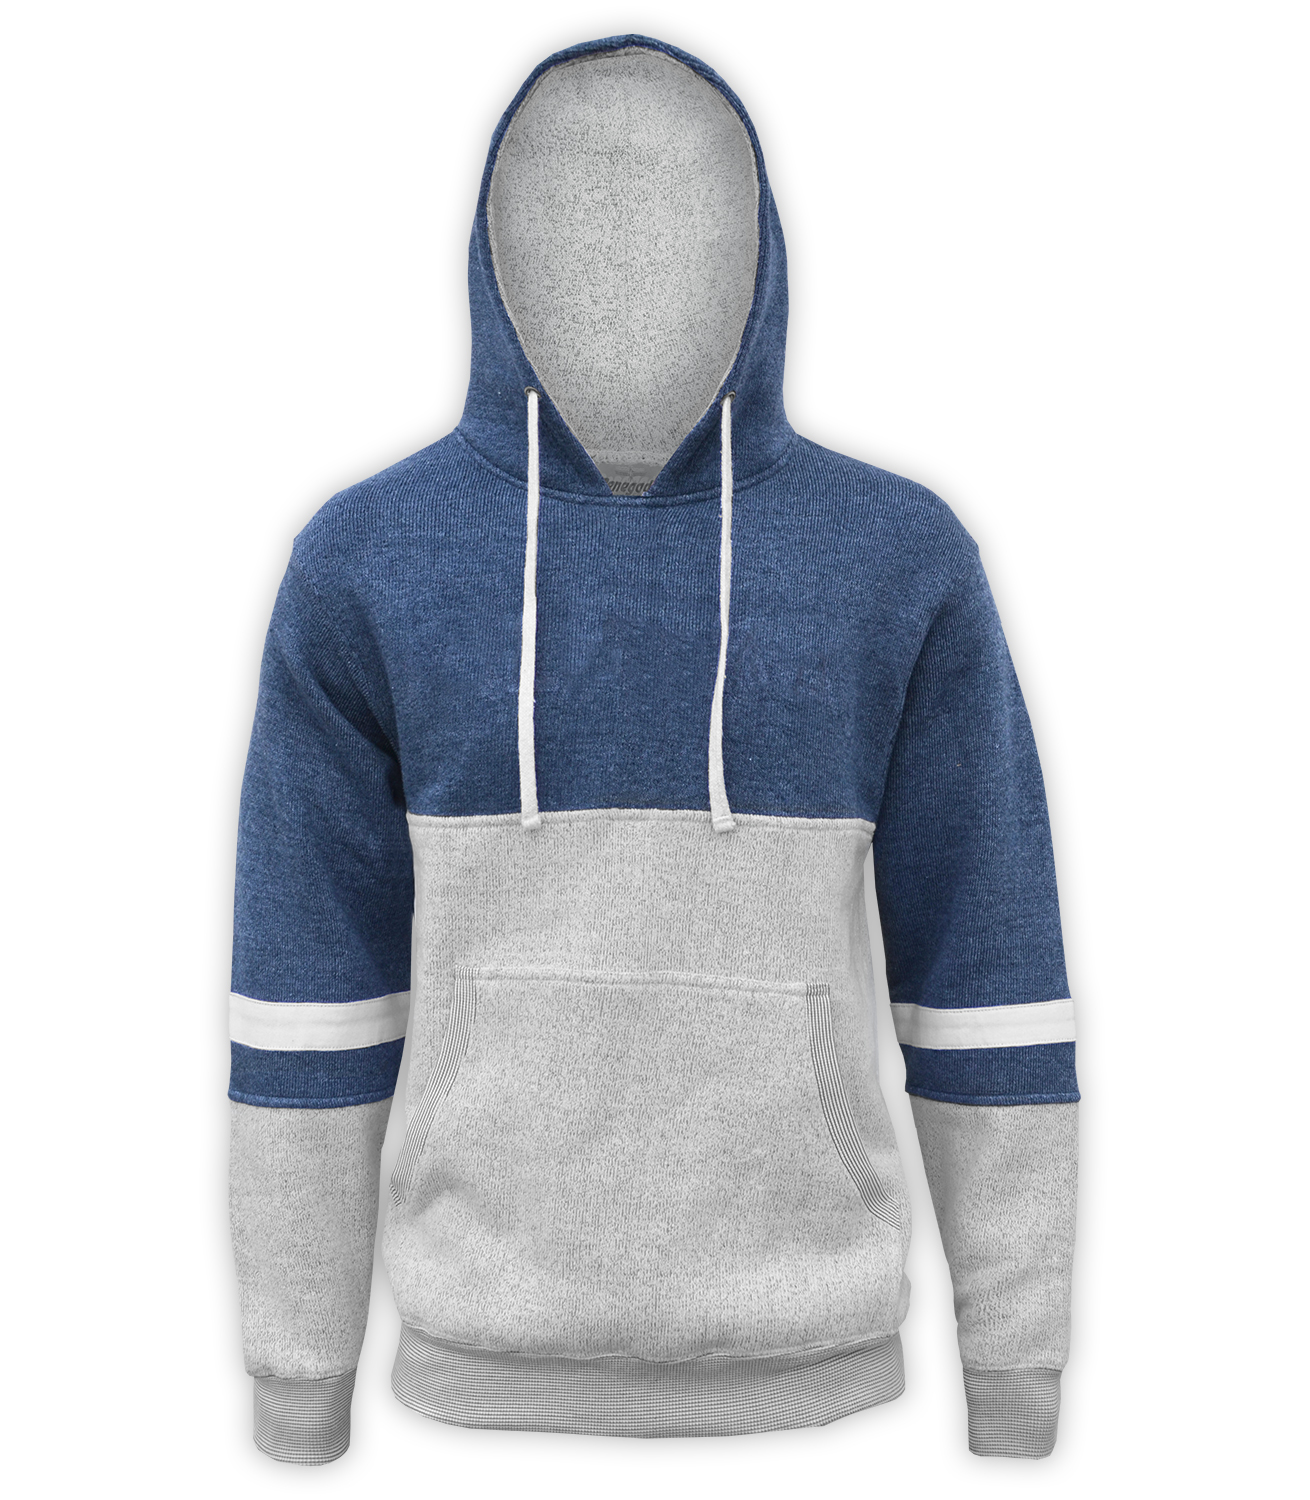 renegade club brand hoodie, blue gray white fleece pullover, nantucket fleece fabric, stripes, blue denim, navy